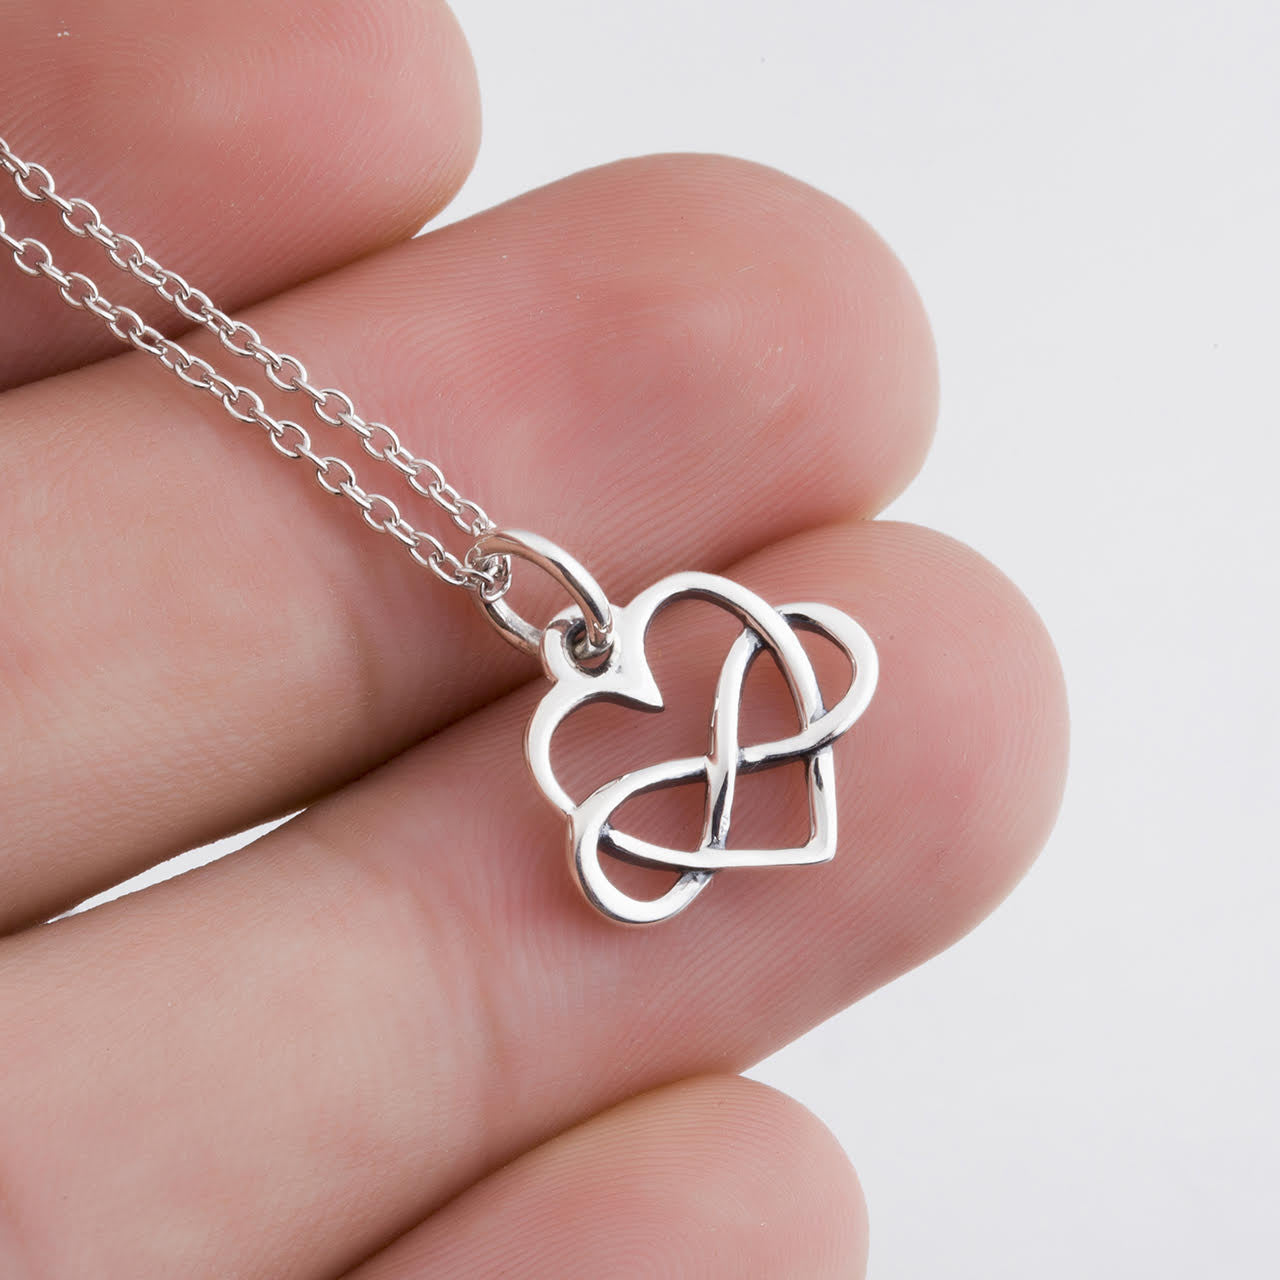 thailand orders necklace free infinity silver watches endless love jewelry over on handmade product overstock shipping sign sterling symbol